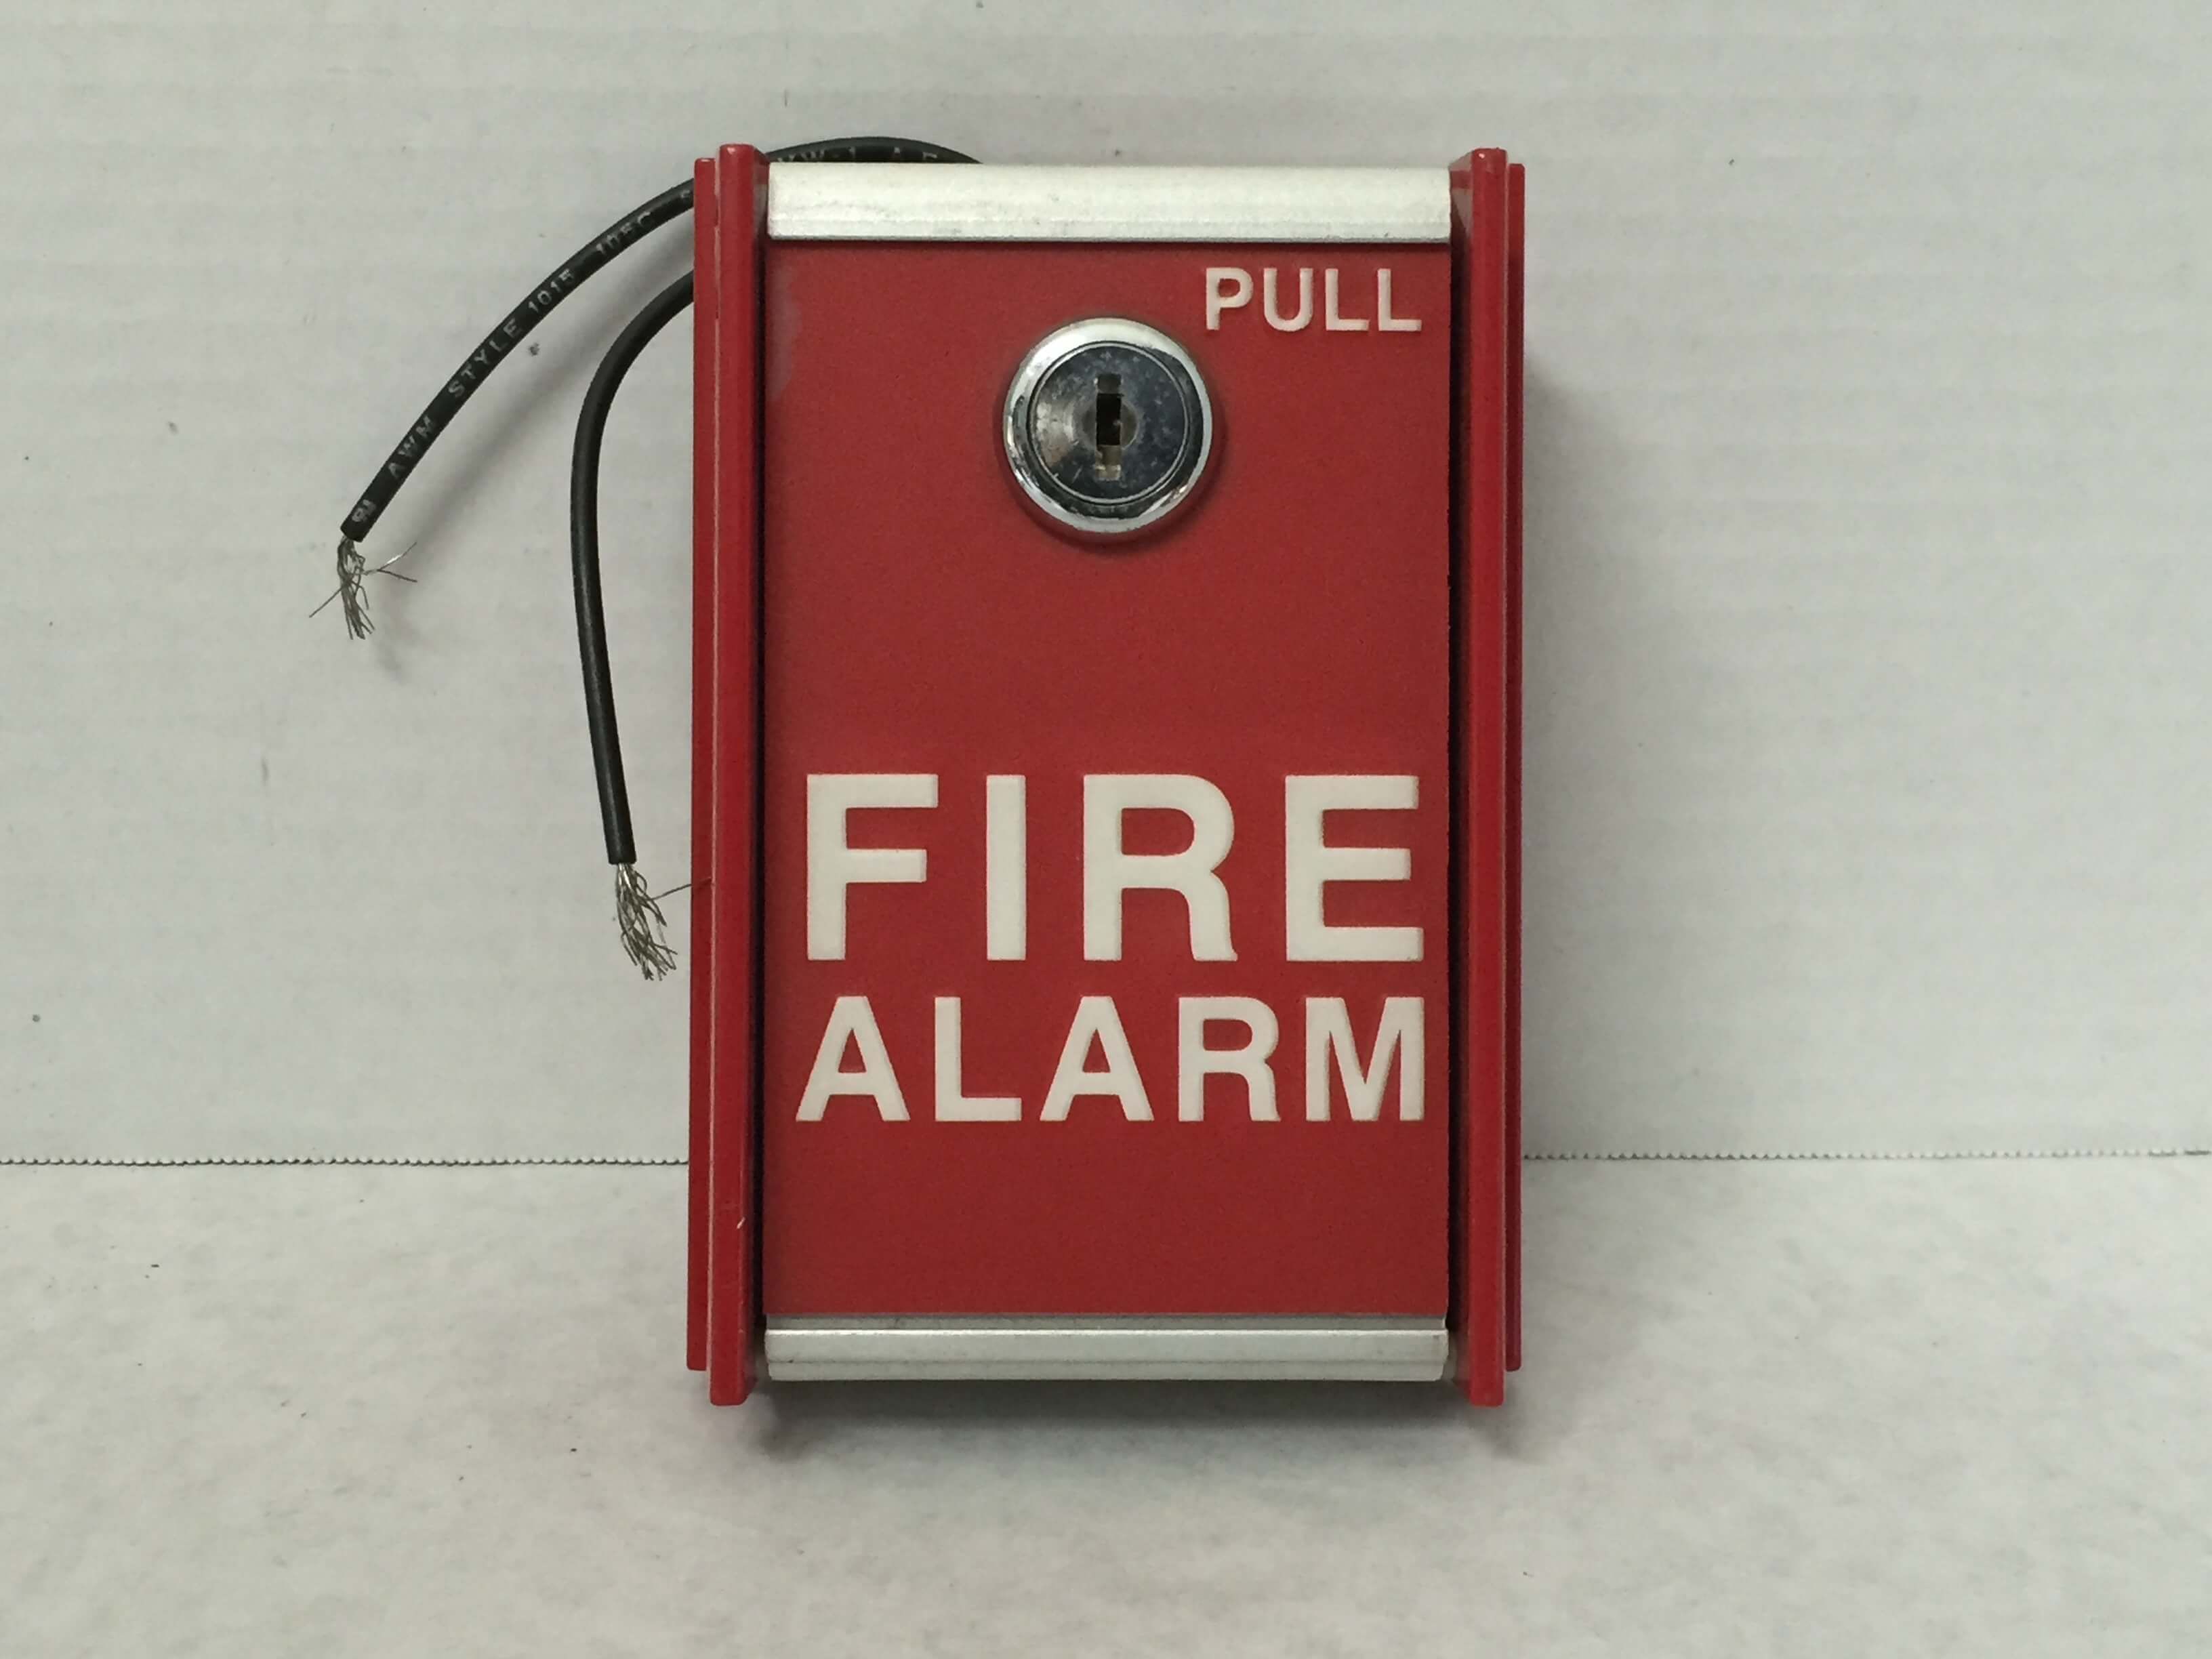 Fci Ms 6 Firealarms Tv Jjinc24 U8ol0 S Fire Alarm